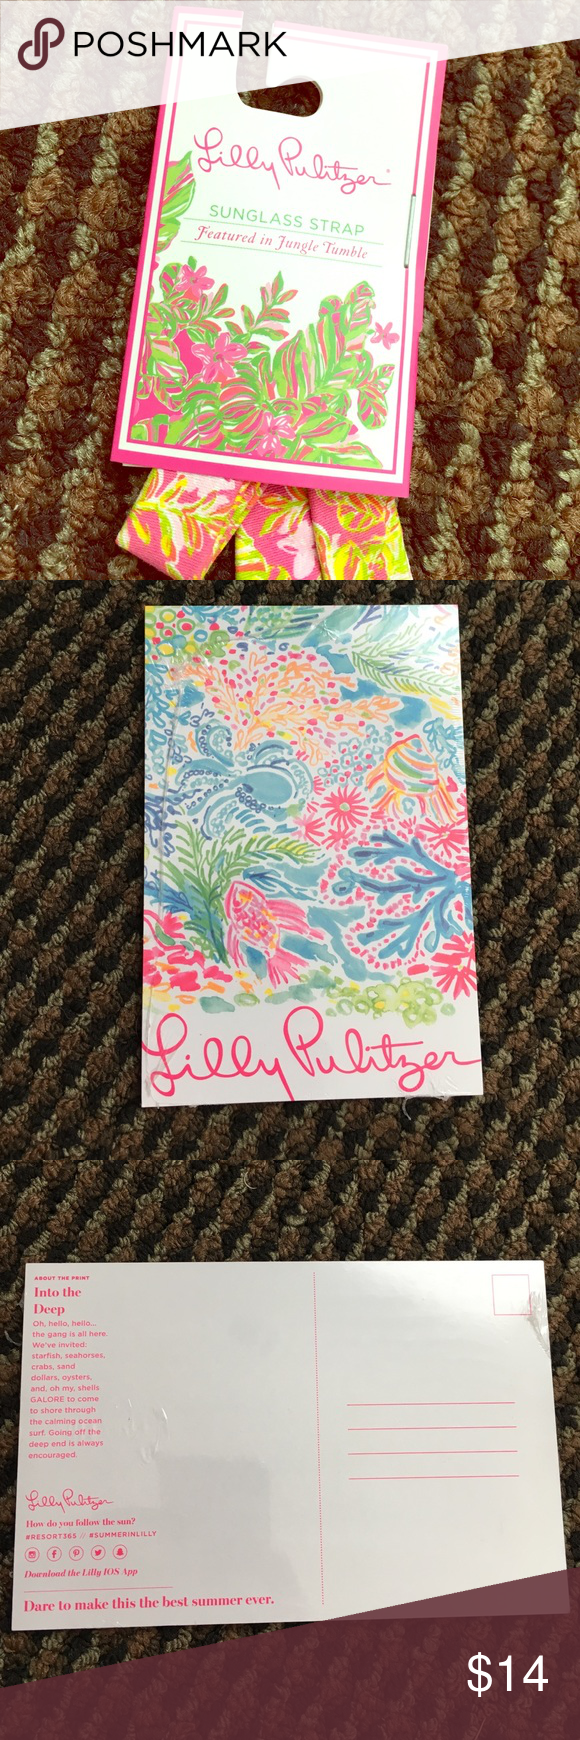 """Lilly Pulitzer sunglass strap and postcards Brand new with tags sunglass strap. """"Jungle Tumble"""" pattern. Comes with pink Lilly pouch and 5 Lilly postcards! Lilly Pulitzer Accessories Sunglasses"""